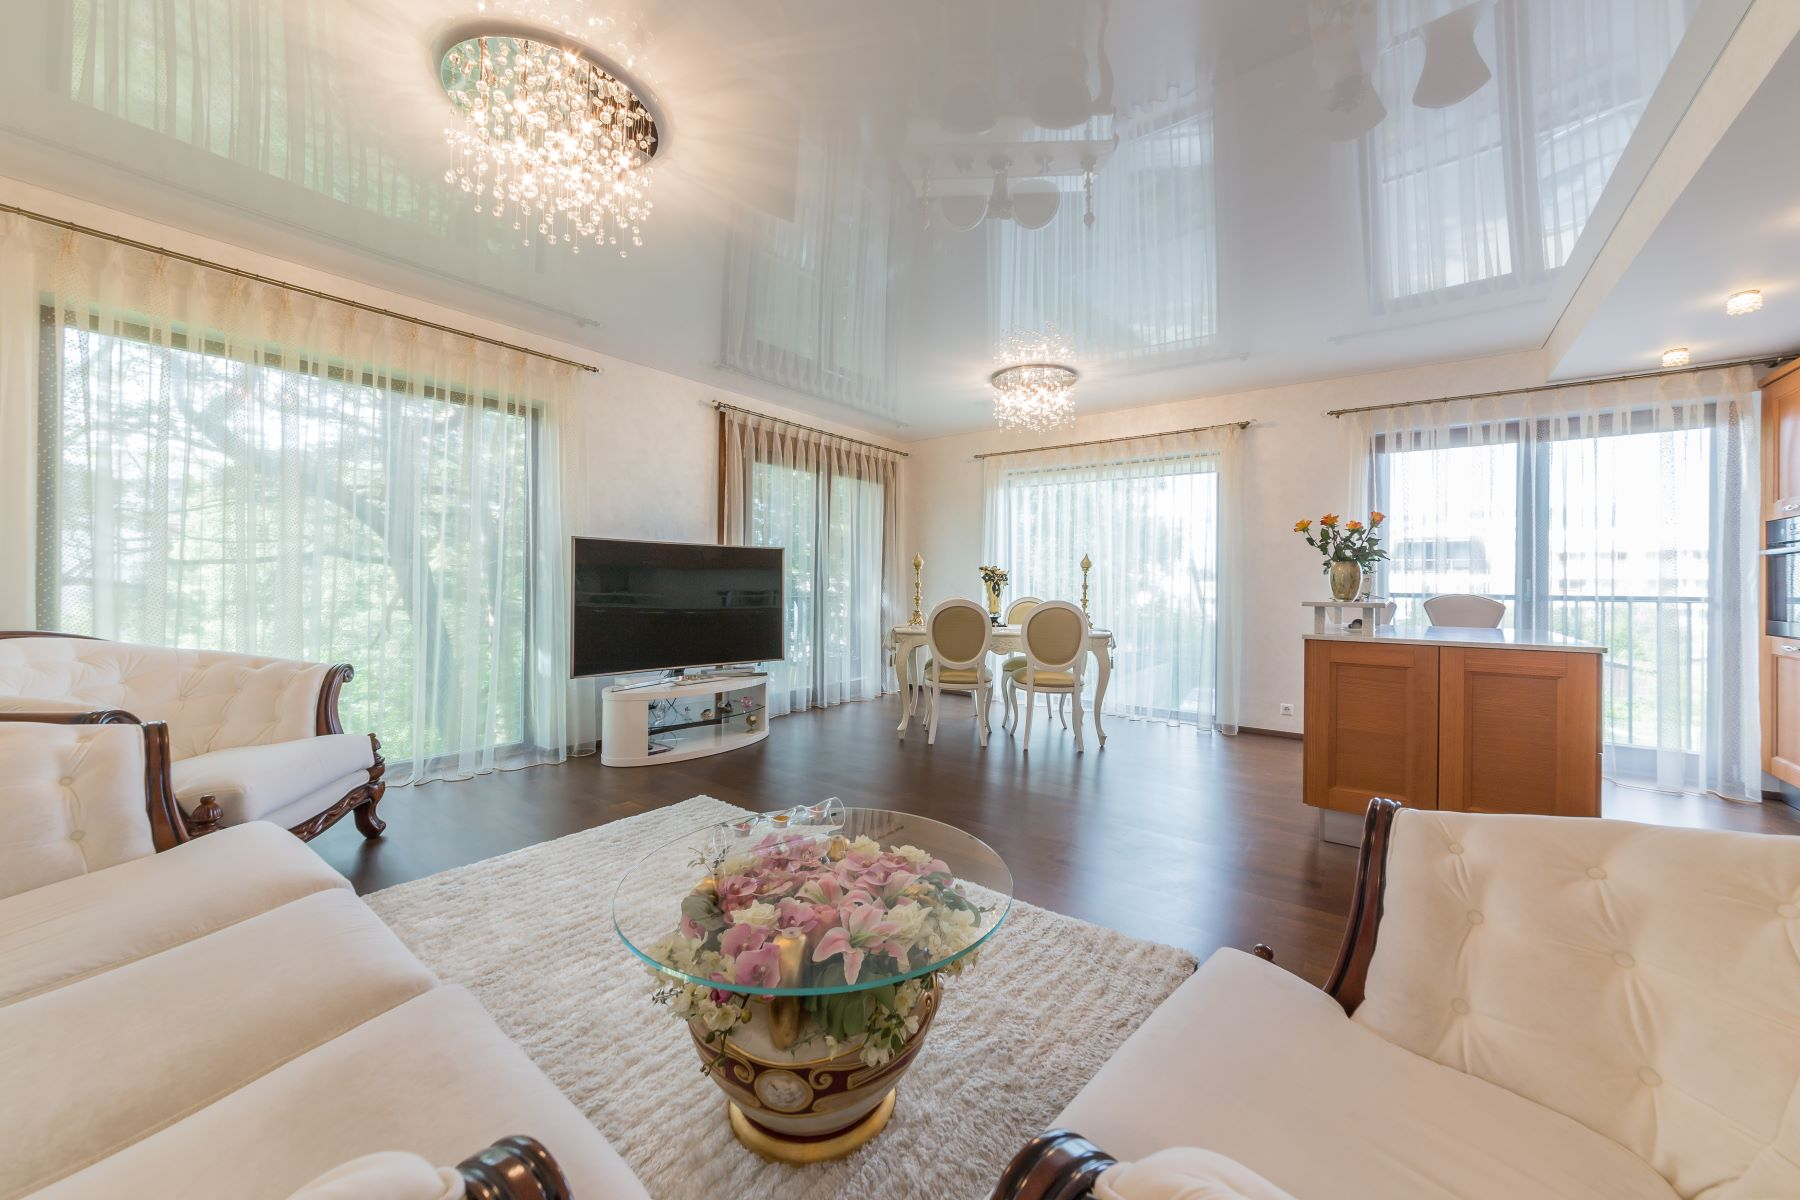 واحد منزل الأسرة للـ Sale في Elegant fully-furnished apartment in prestigious area of Tallinn Tallinn, Harjumaa, Estonia